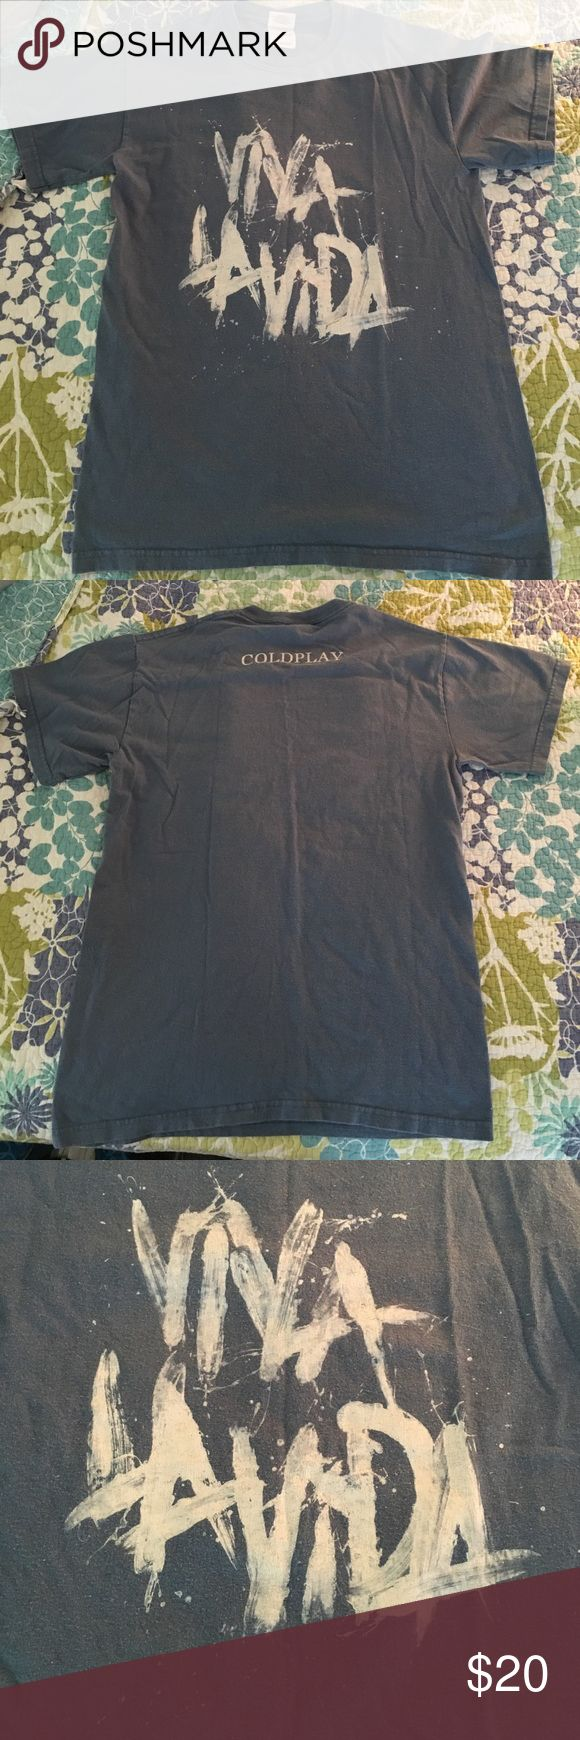 COLDPLAY SHIRT Pre-owned Coldplay T-Shirt, Bought at concert! Size small. One of a kind!! No longer sold. Shirts Tees - Short Sleeve